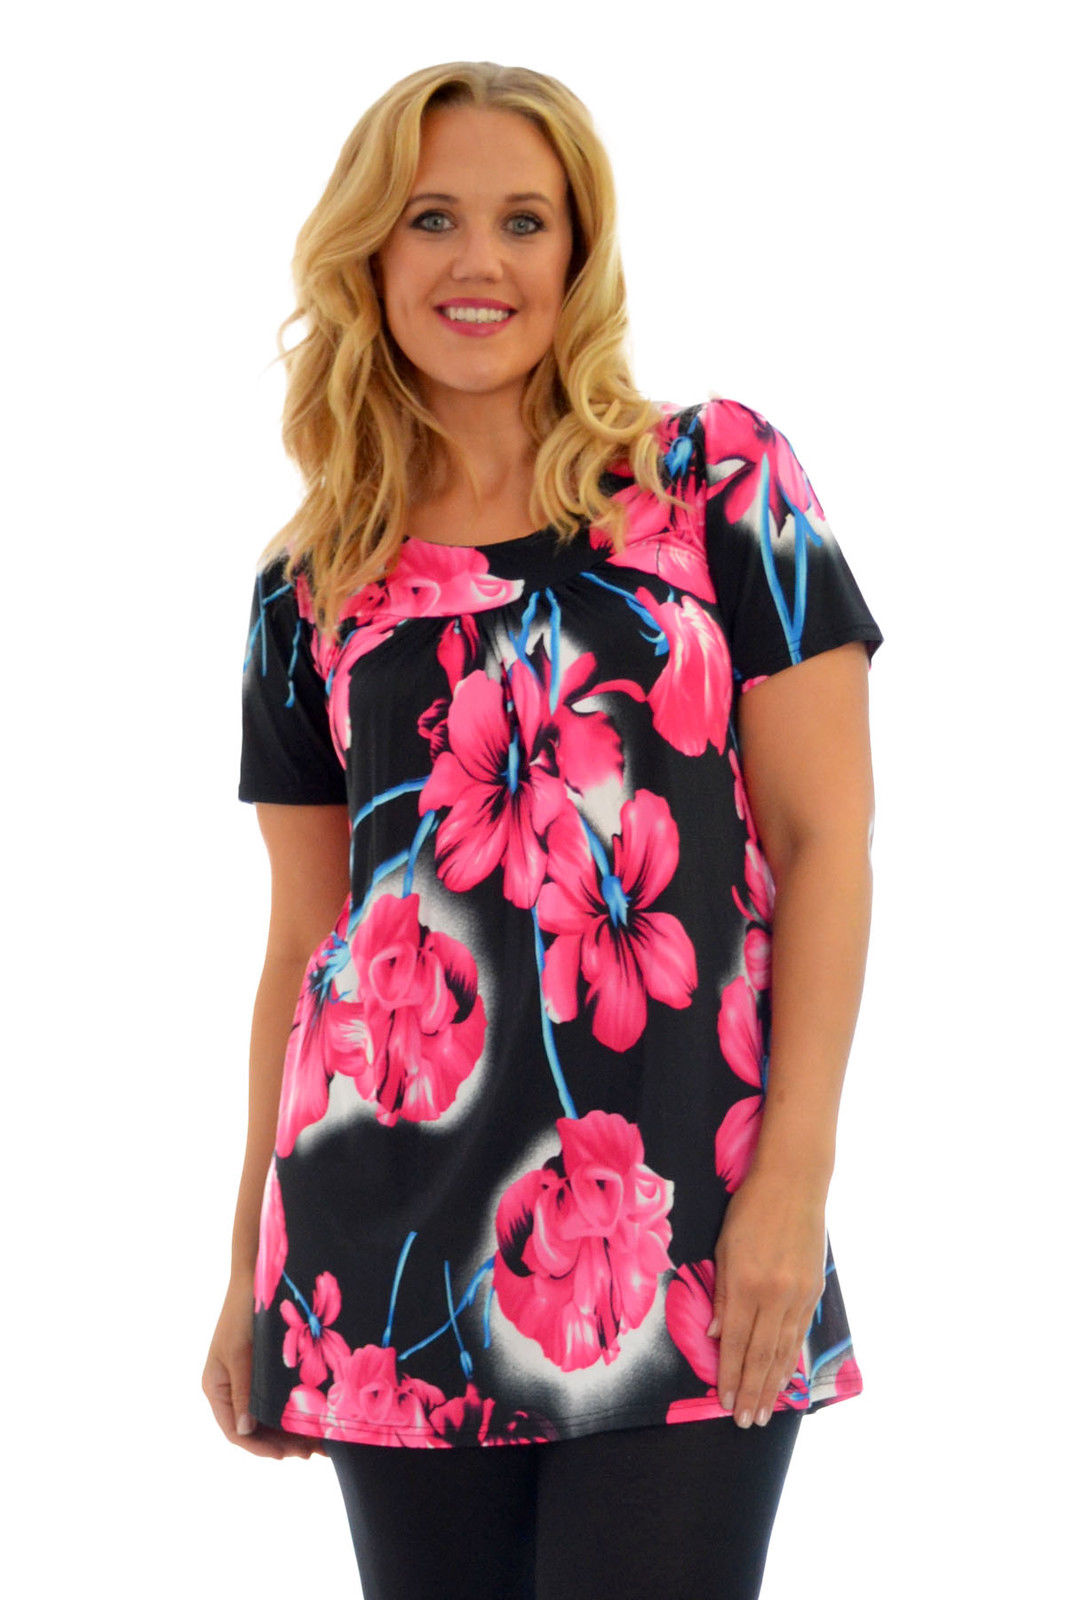 Old Navy has a large floral tops for women selection in an assortment of exciting options. Discover a floral shirts collection that gives you the latest trends for a fashionable style.